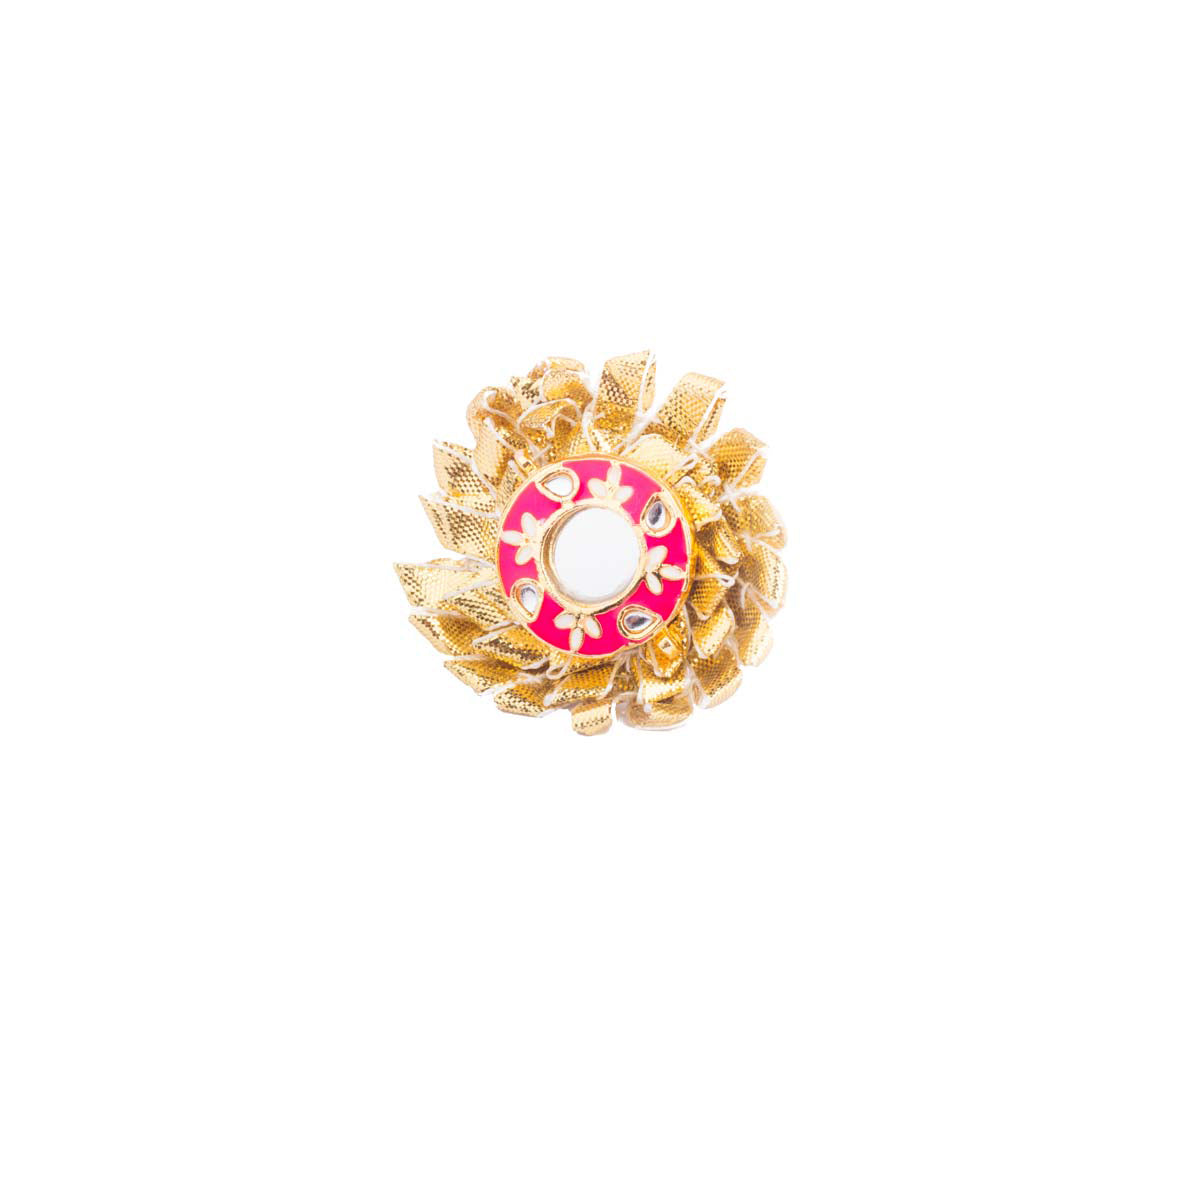 Ideal for a destination wedding, turn on the chic with this gota floral ring finished in the center with enamel and mirror.